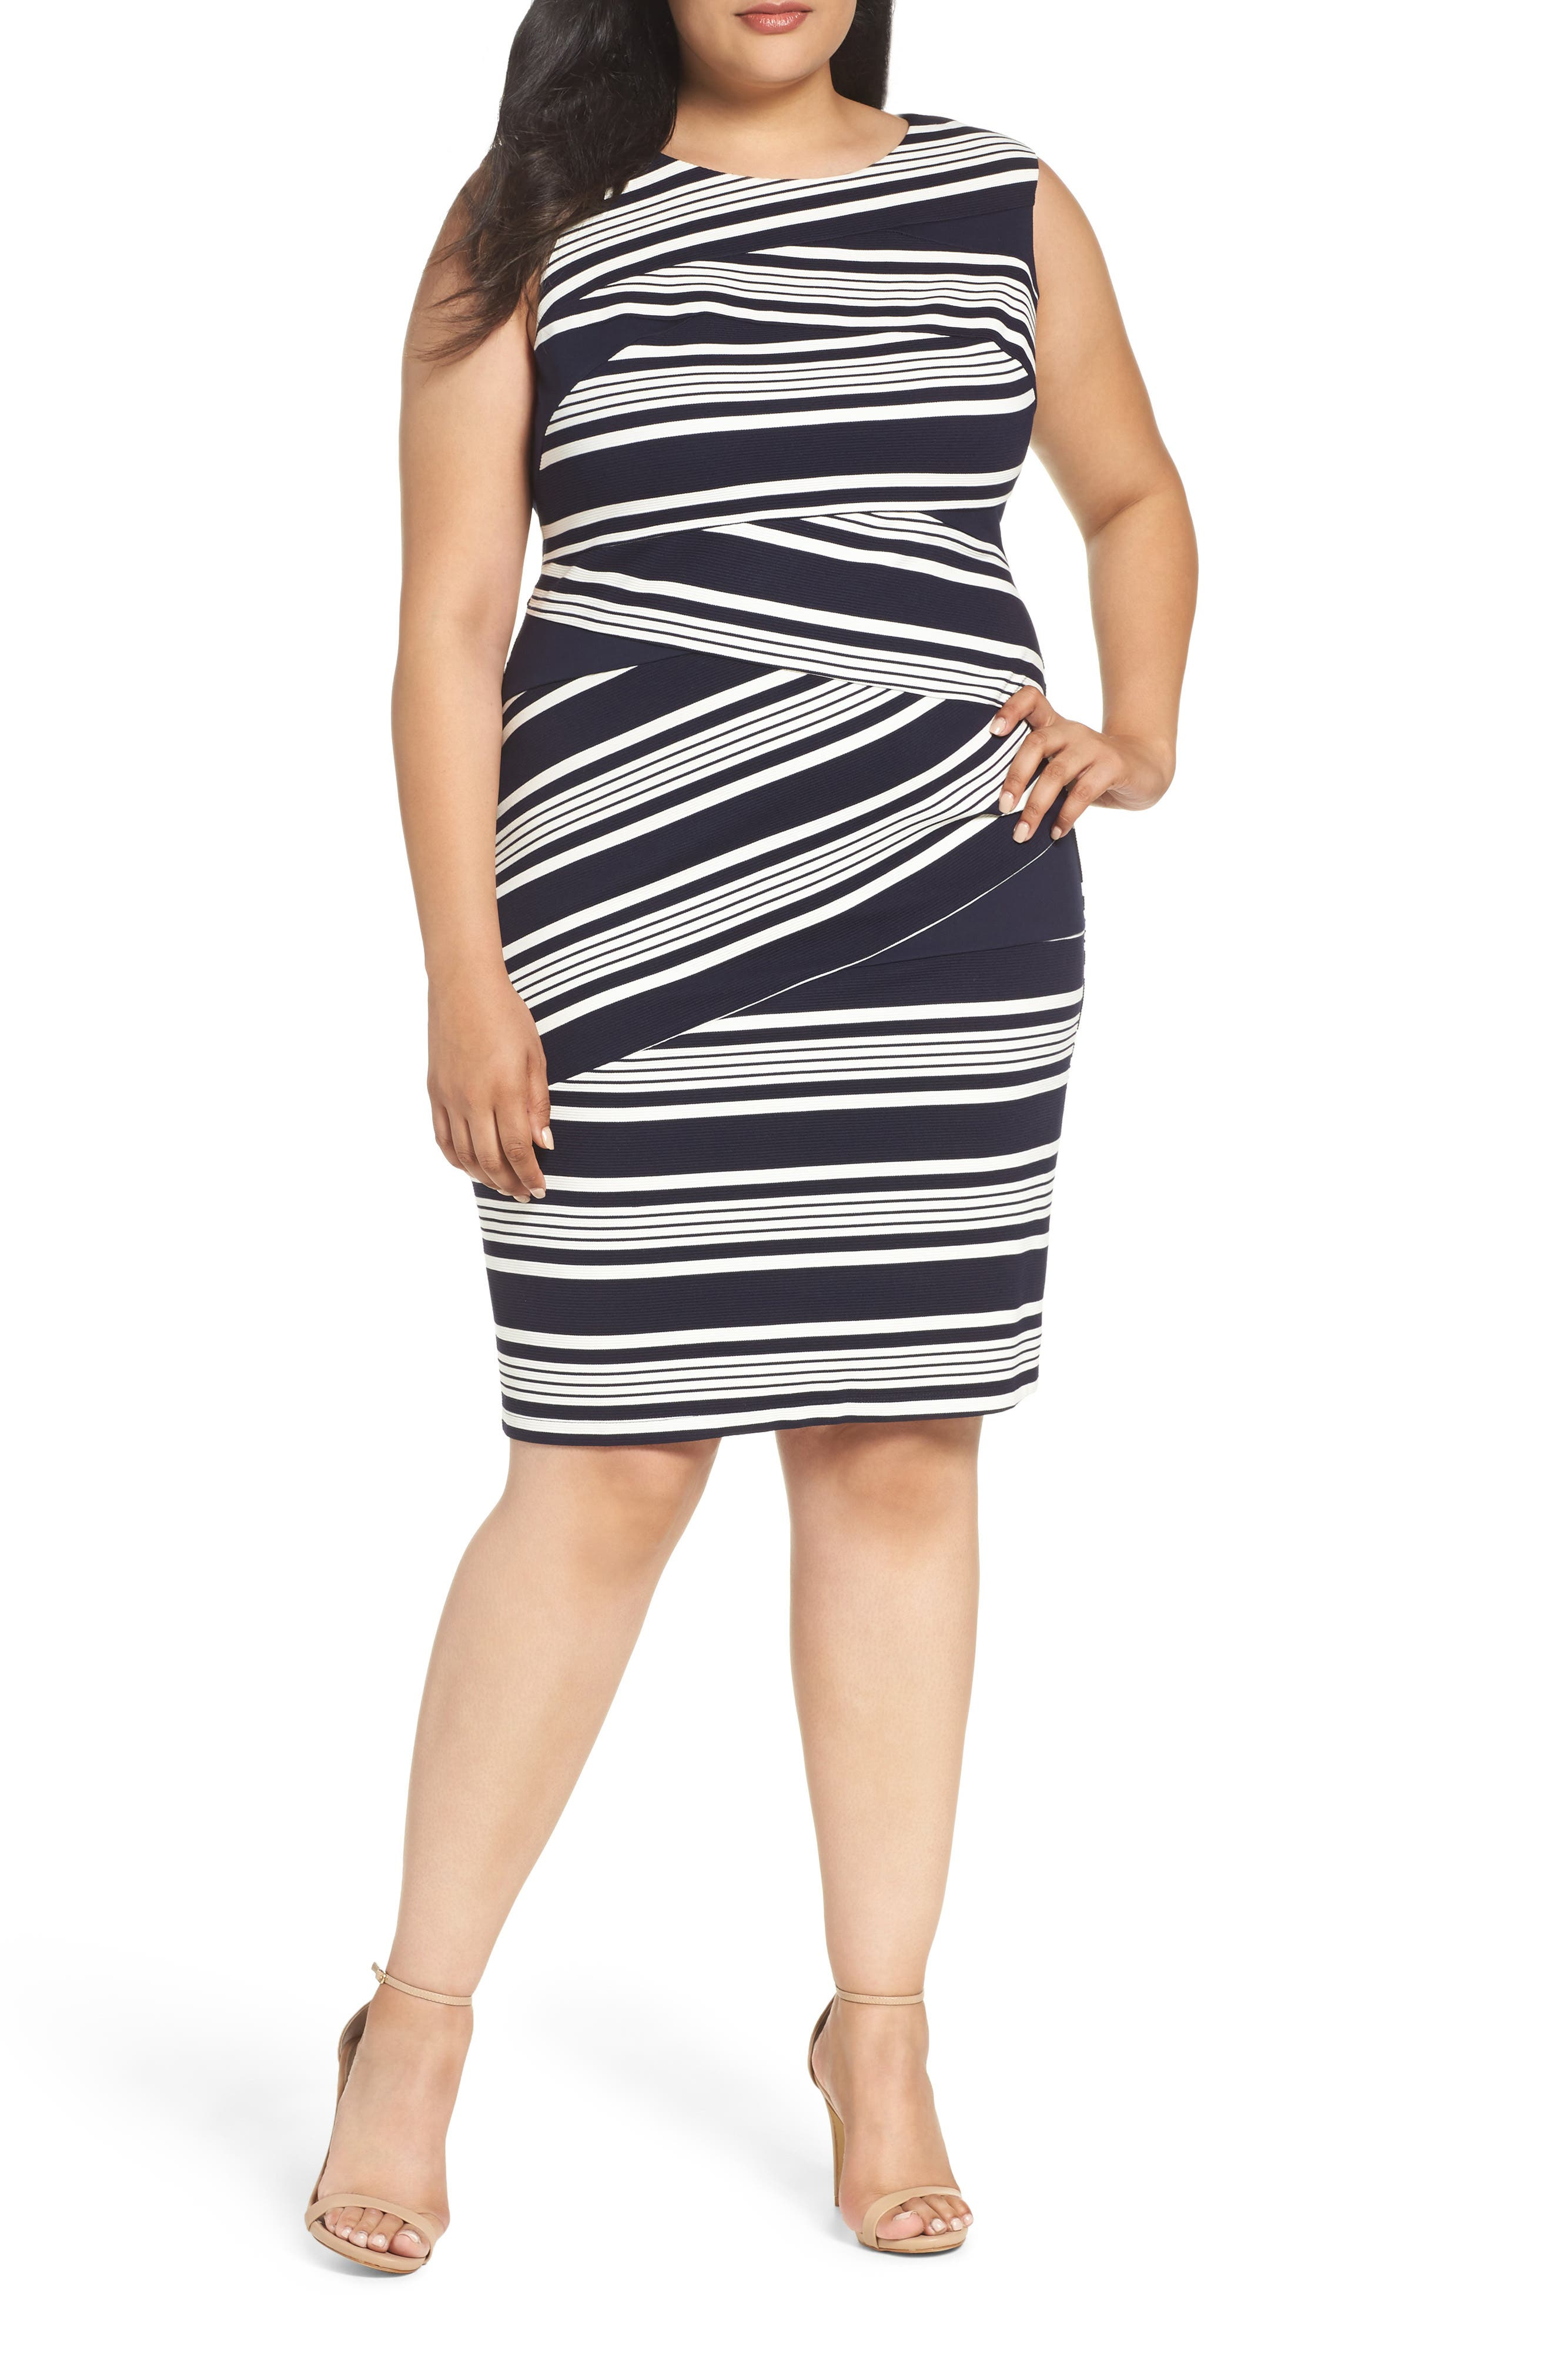 Main Image - Adrianna Papell Stripe Body-Con Dress (Plus Size)